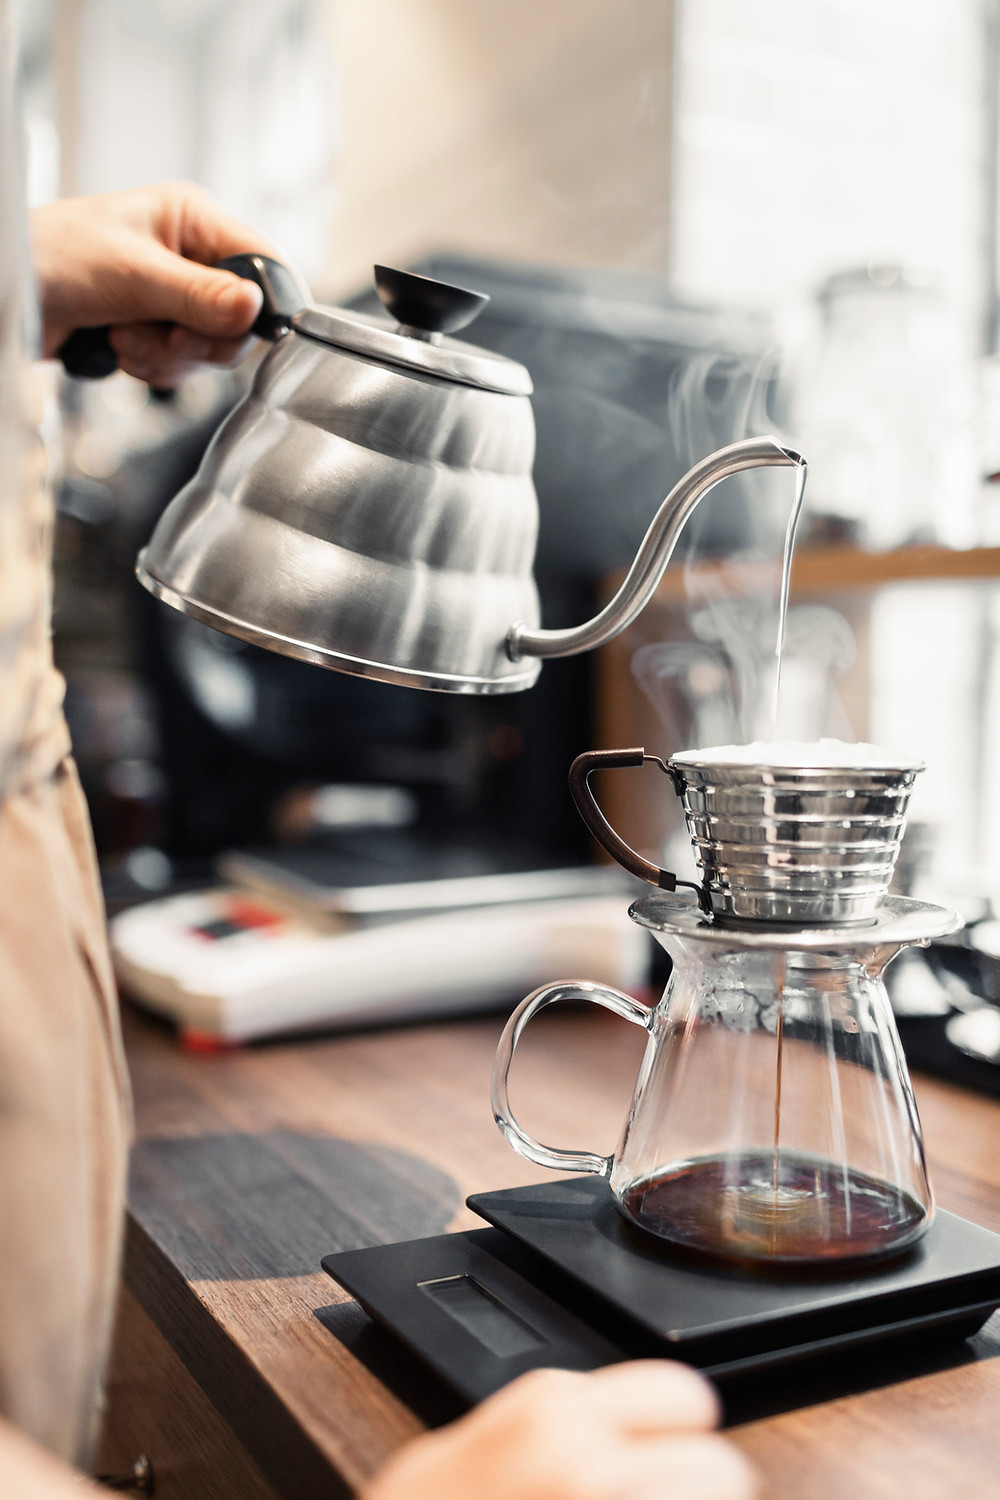 Pour over coffee from freshly roasted beans